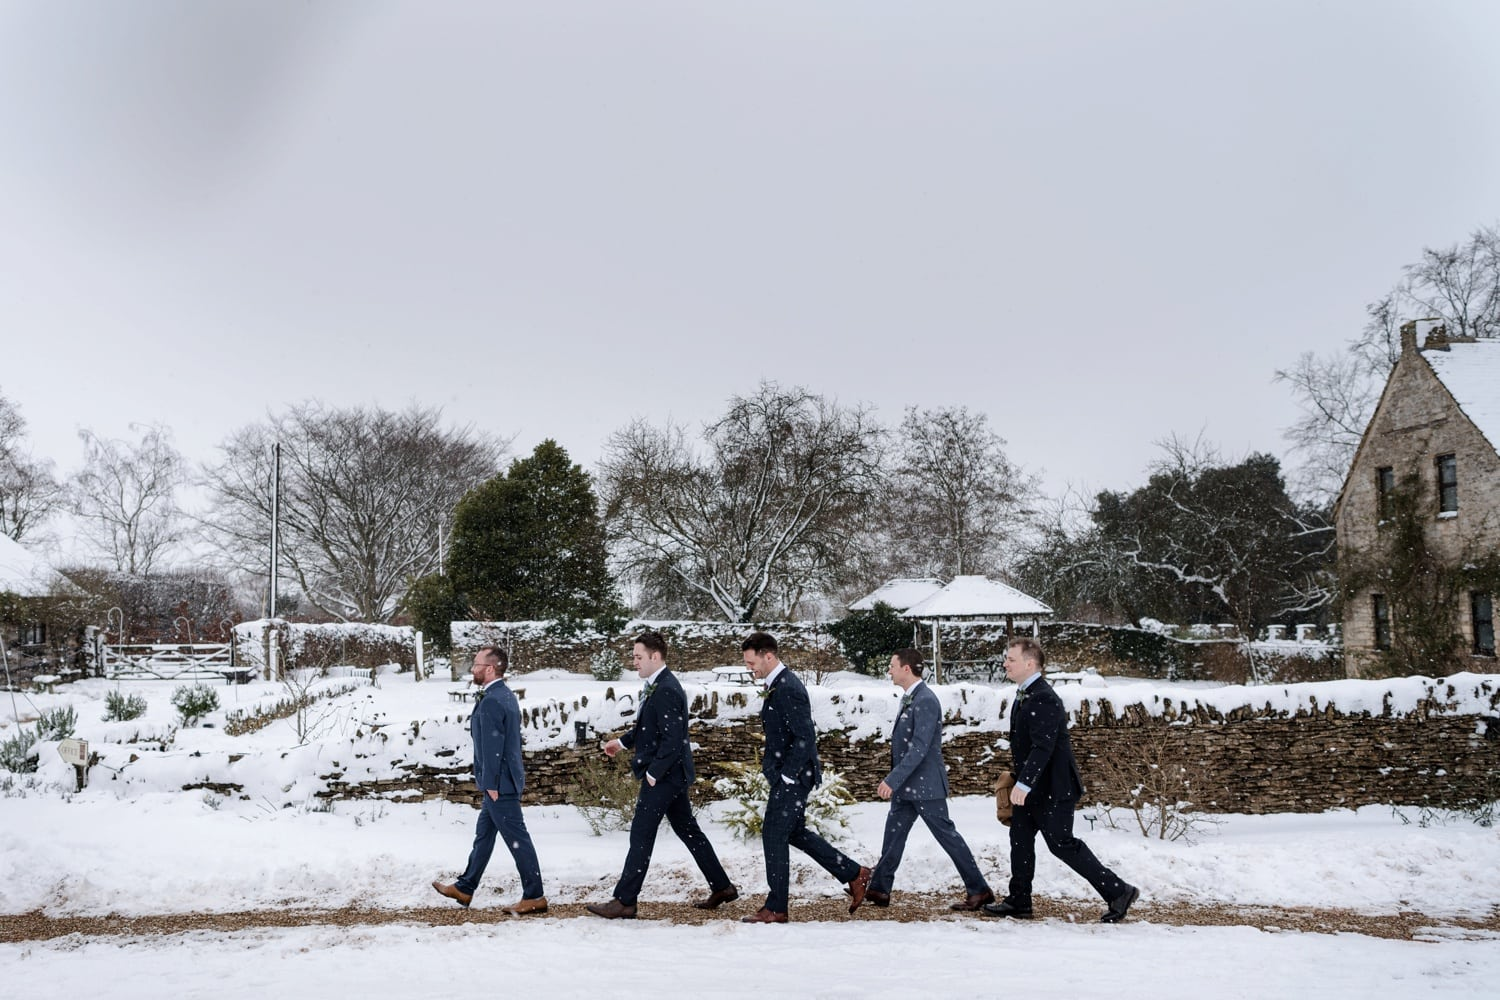 Groom and ushers walking through snow at a wedding